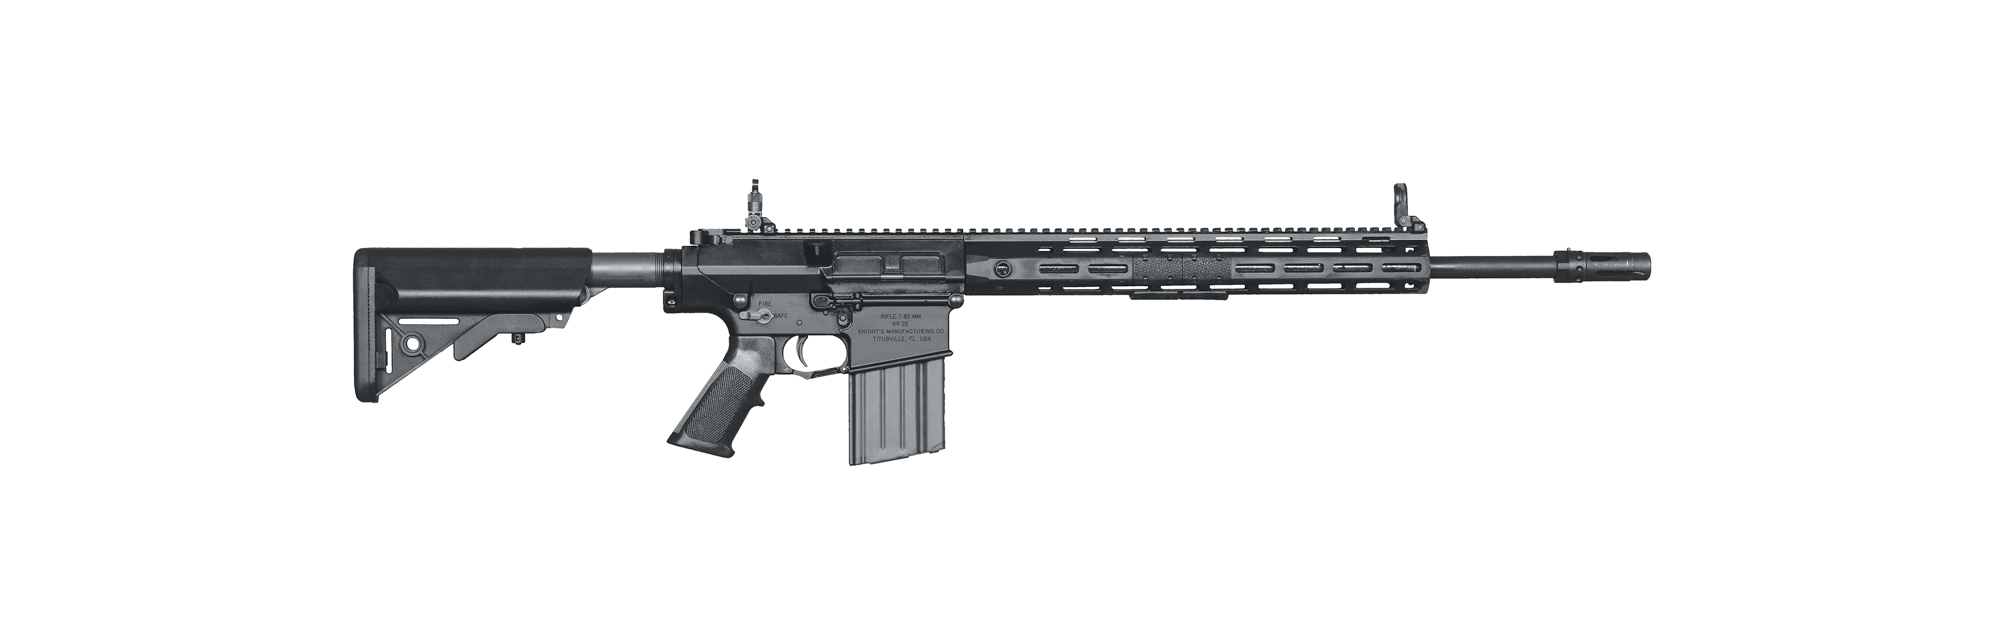 Sr-25_apr_M-LOK_insideproductimage